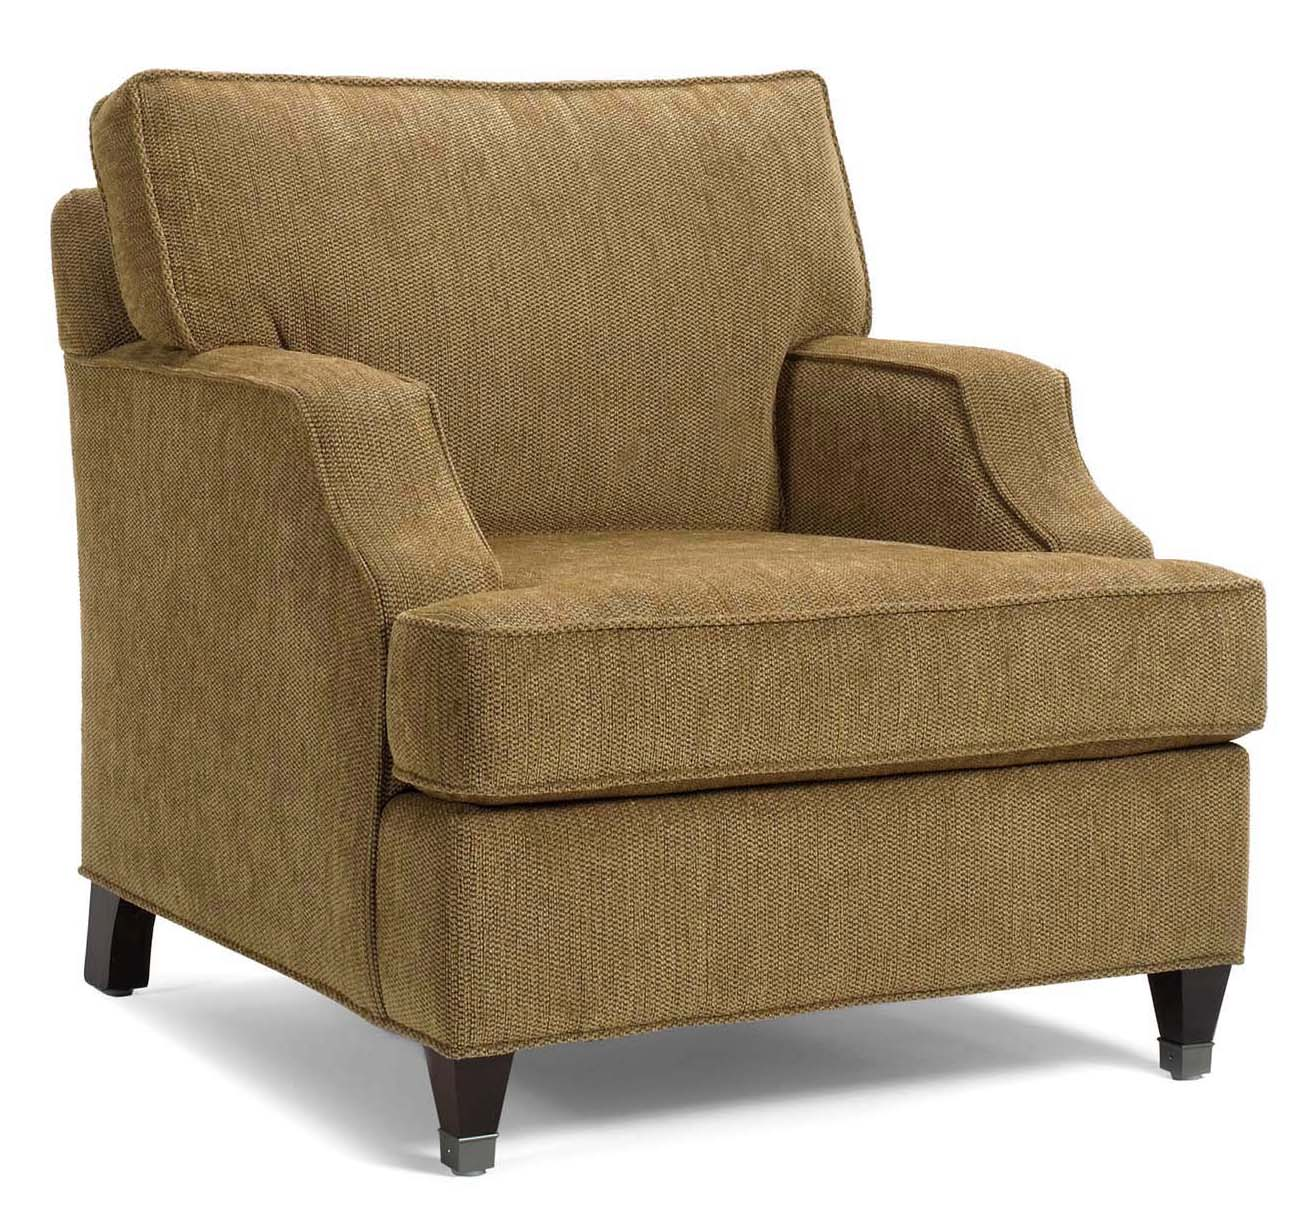 Most Durable Upholstery Fabric For Sofa Best Way To Clean Black Leather Upholstered Furniture Understanding Cleaning Symbols